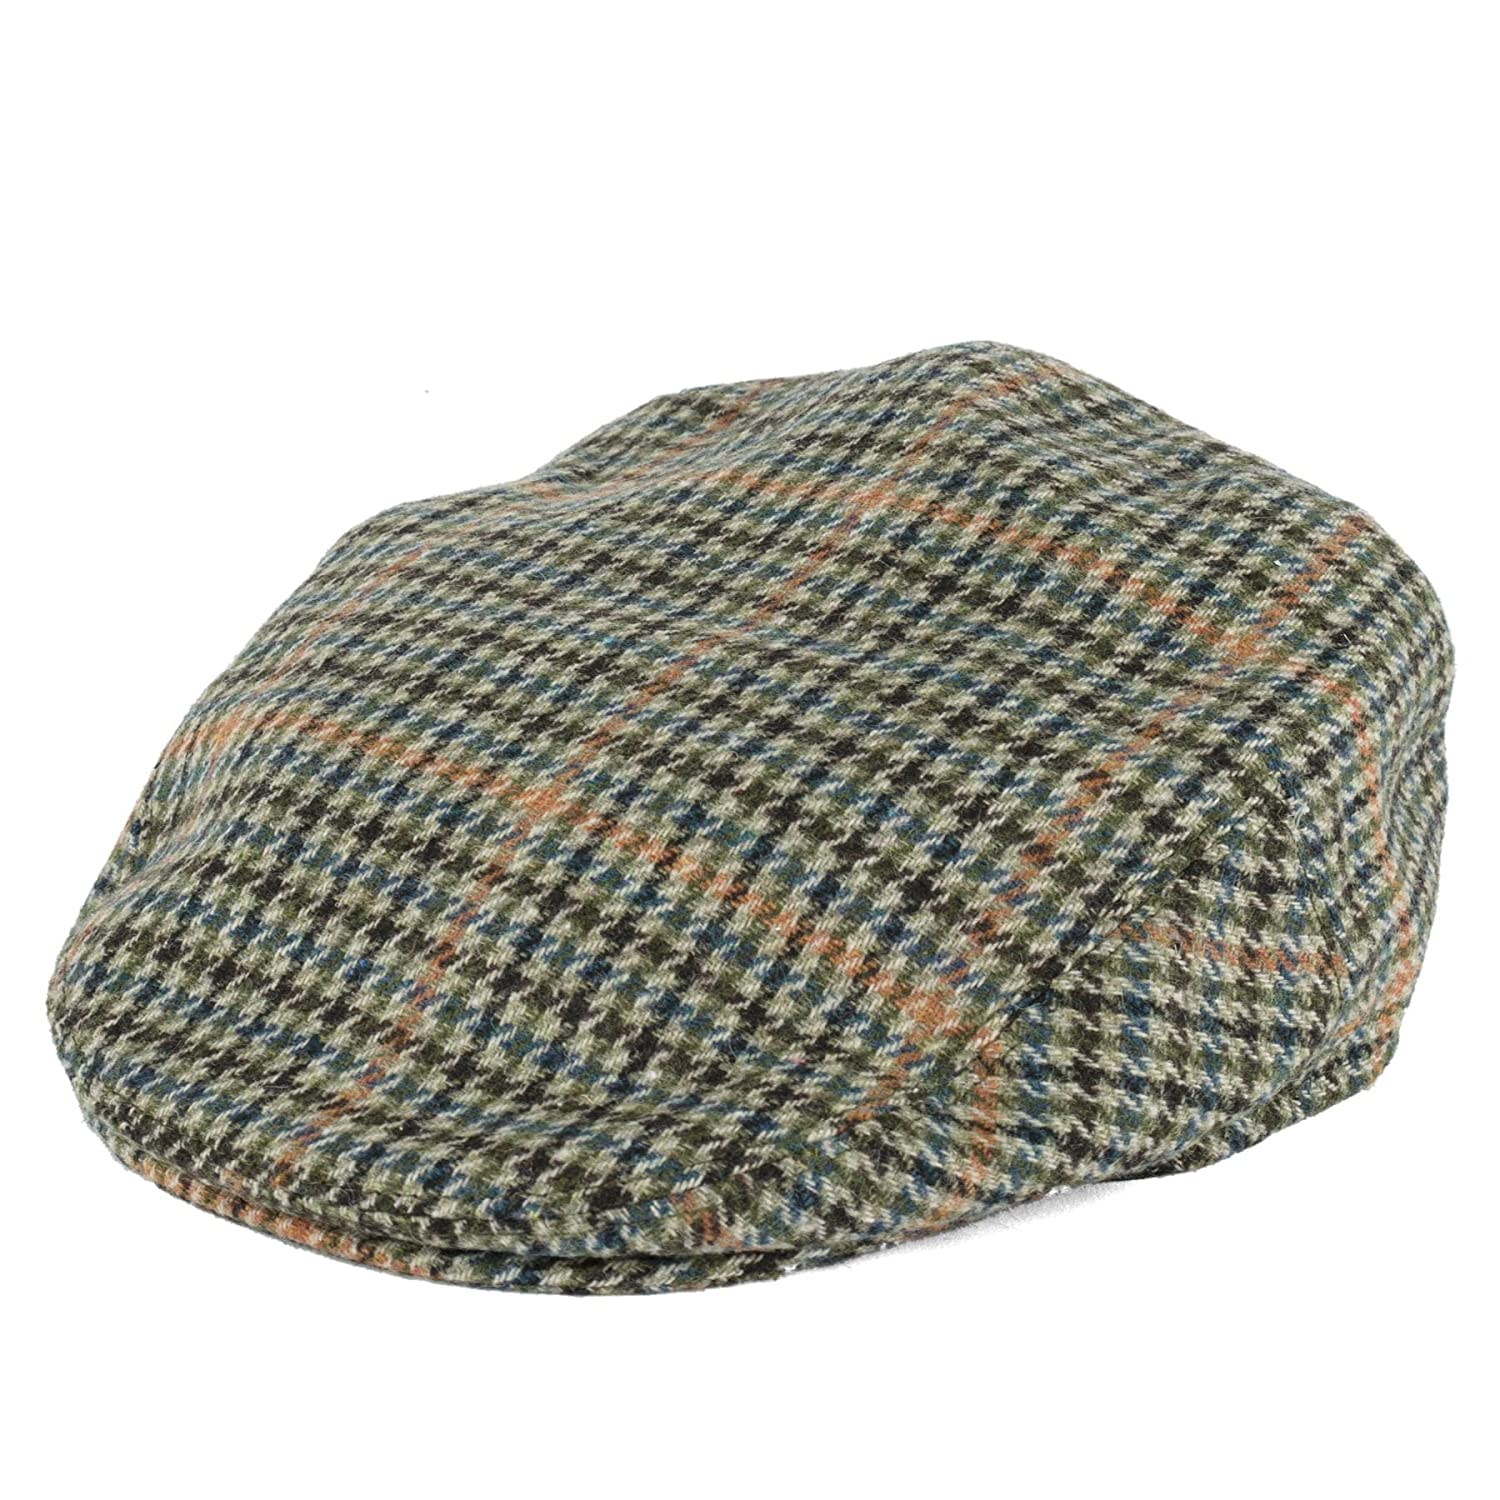 94791a807c6 Amazon.com  Hat To Socks Dogtooth Pattern Ivy Flat Cap  Clothing